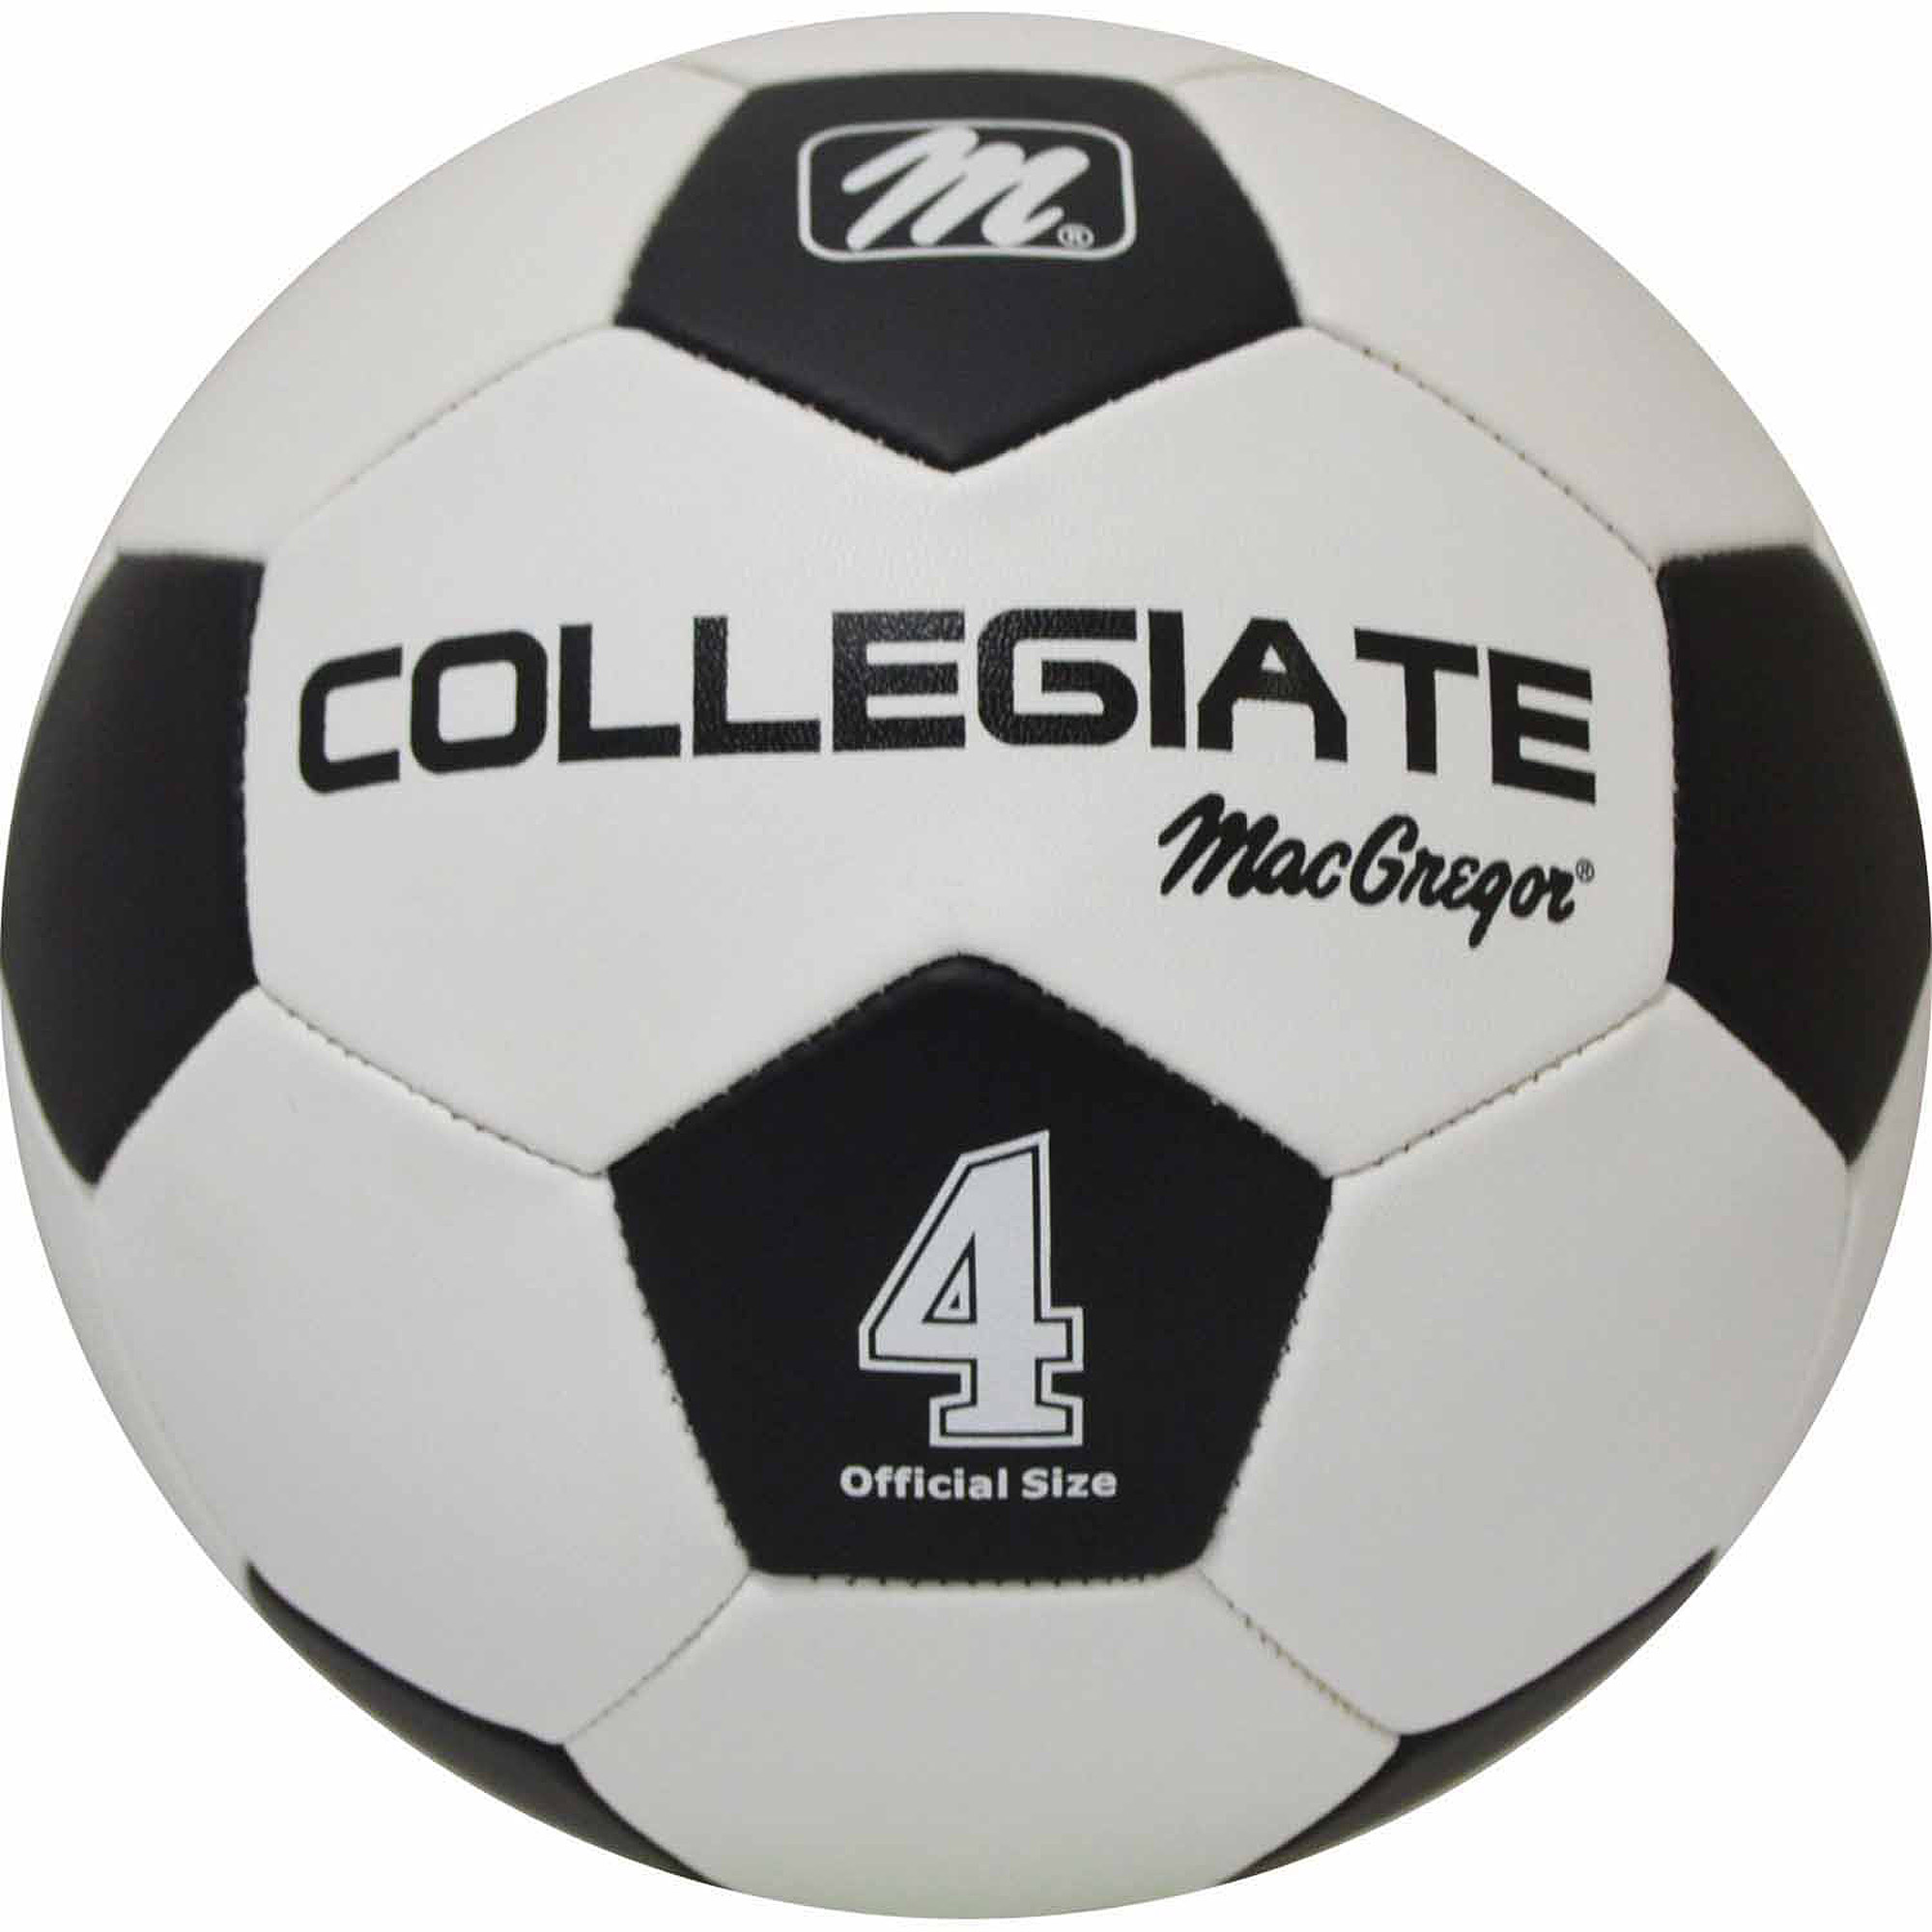 MacGregor Soccer Ball, Size 4